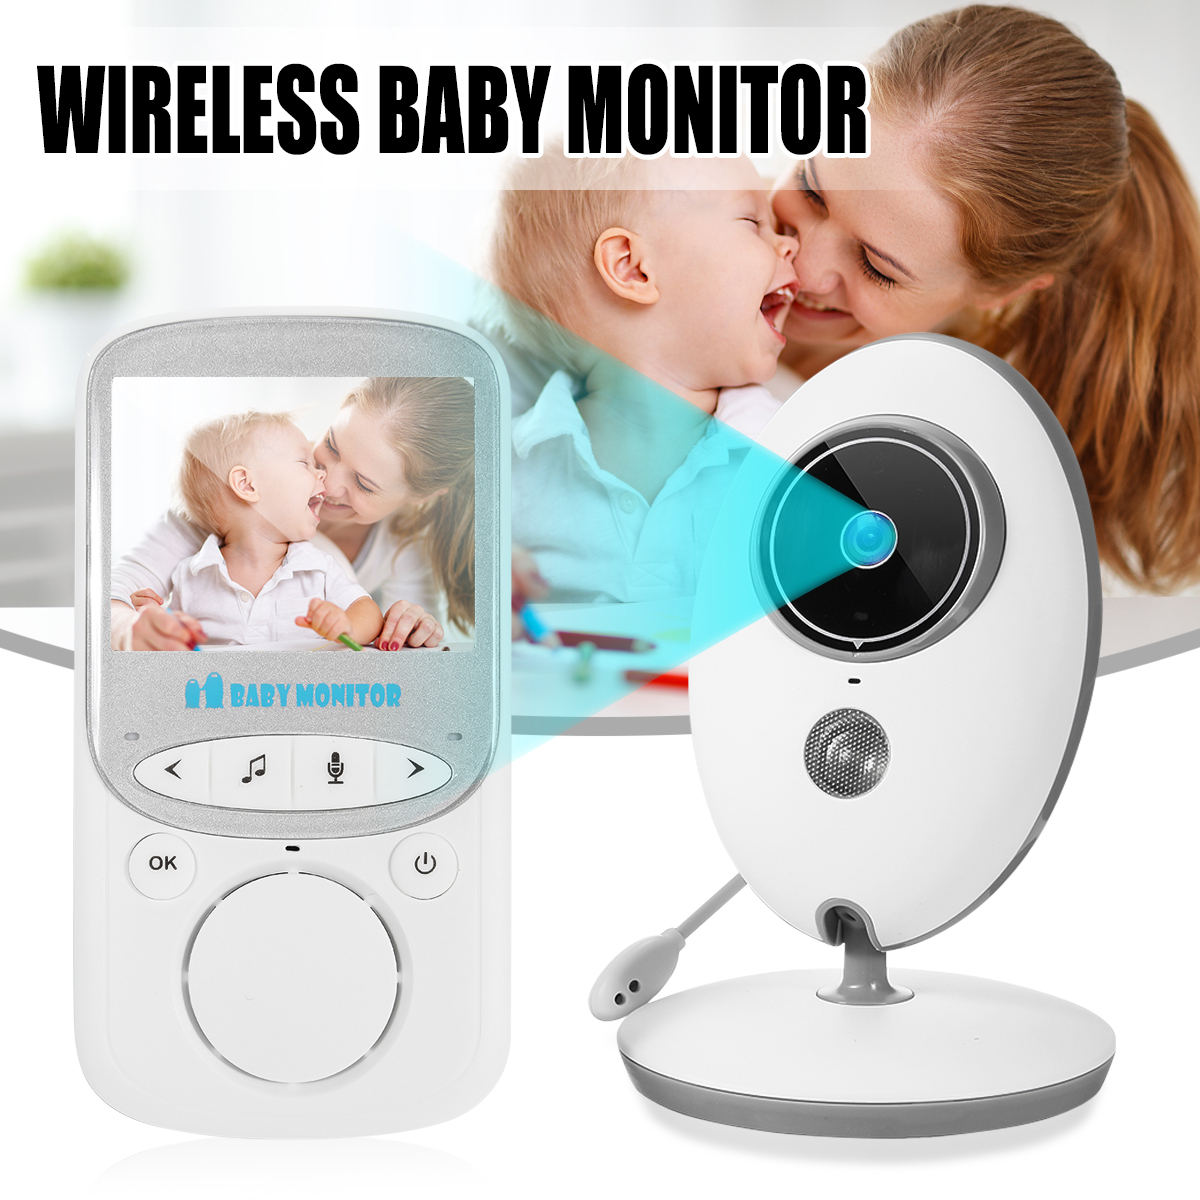 Wireless Video Baby Monitor 2.4 inch Color Security Camera 2 Way Talk Night Vision IR LED Temperature Monitoring with 8 Lullaby baby sleeping monitor color video wireless with camera baba electronic security 2 talk nigh vision ir led temperature monitoring